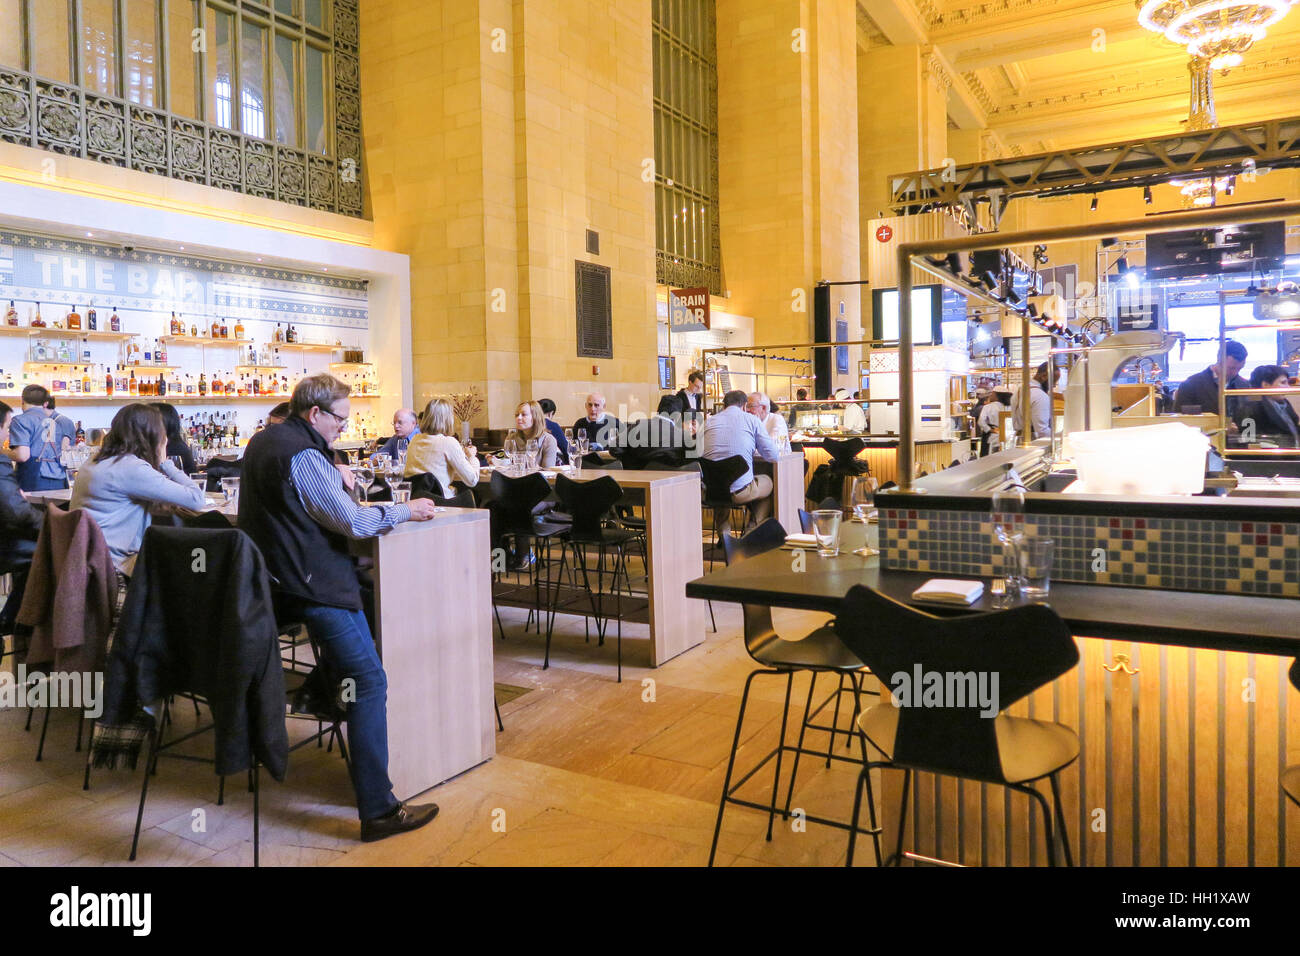 Great Northern Food Hall Great Northern Food Hall Grand Central Terminal Nyc Usa Stock